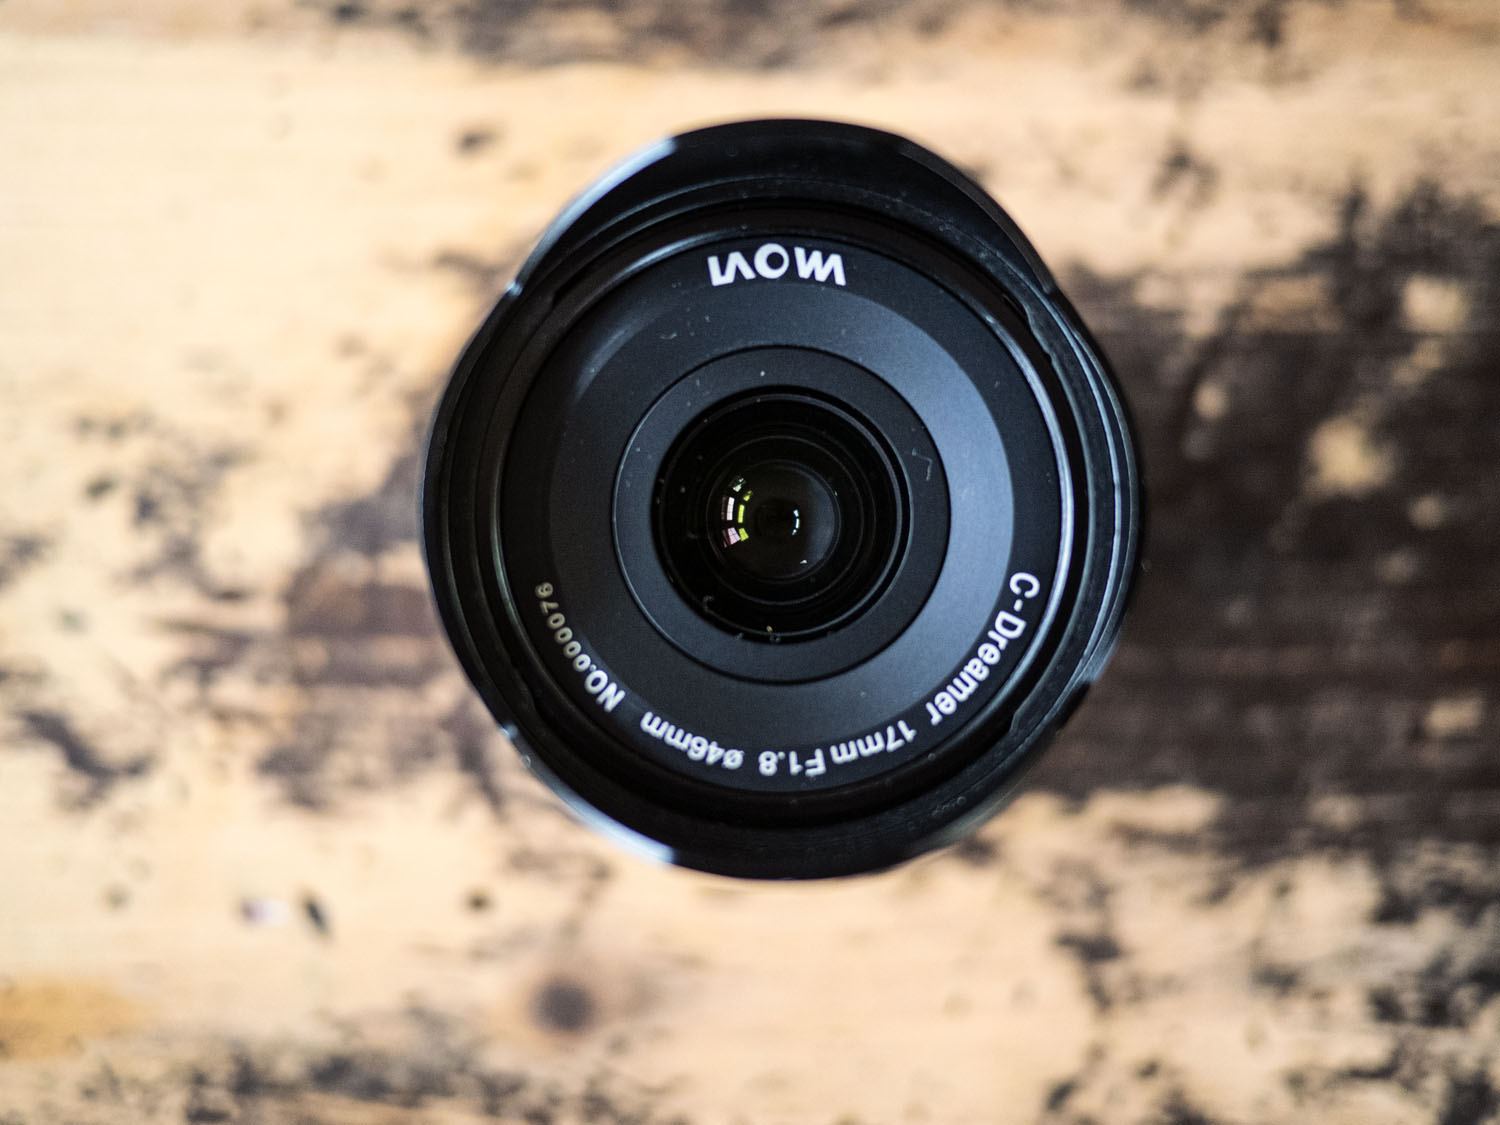 review-laowa-17mm-f1.8-lens-MFT